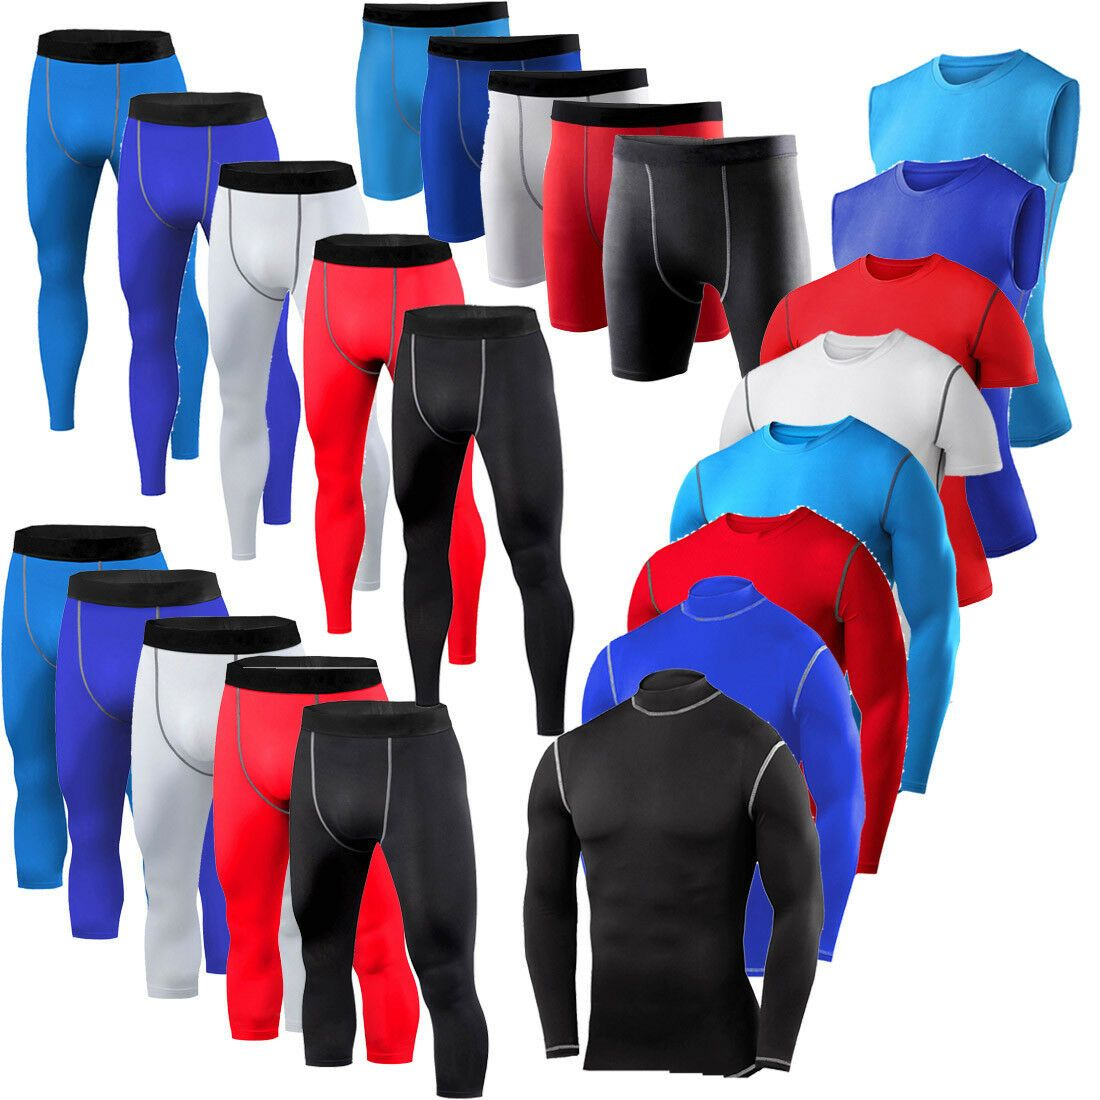 Men/'s Compression Sets Running Basketball Tops Sport Outfits Base Layers Dri-fit